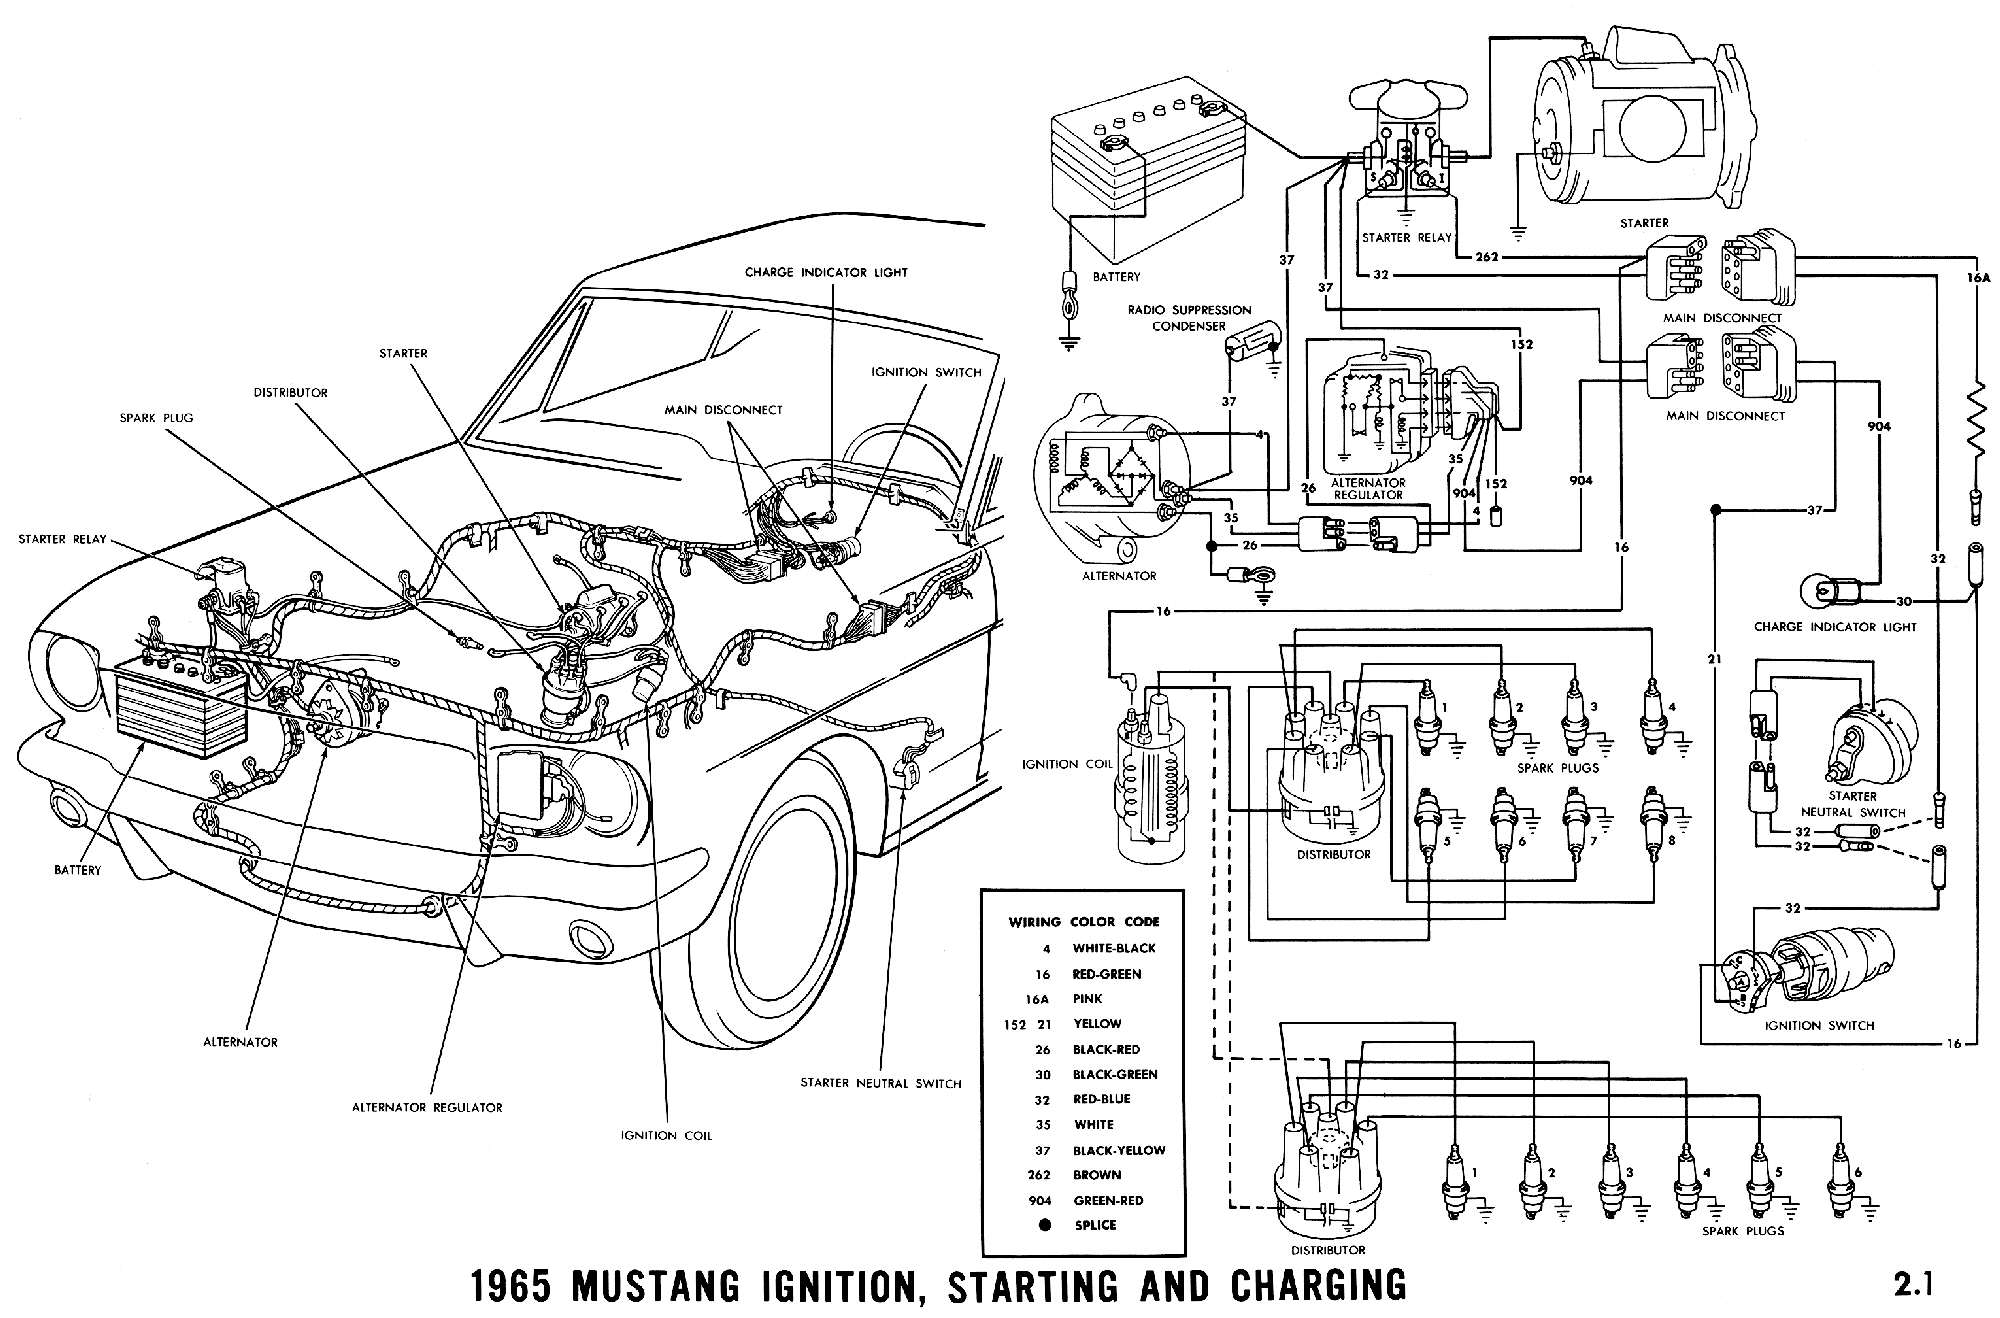 1965c 1965 mustang wiring diagrams average joe restoration 1968 mustang ignition wiring diagram at n-0.co